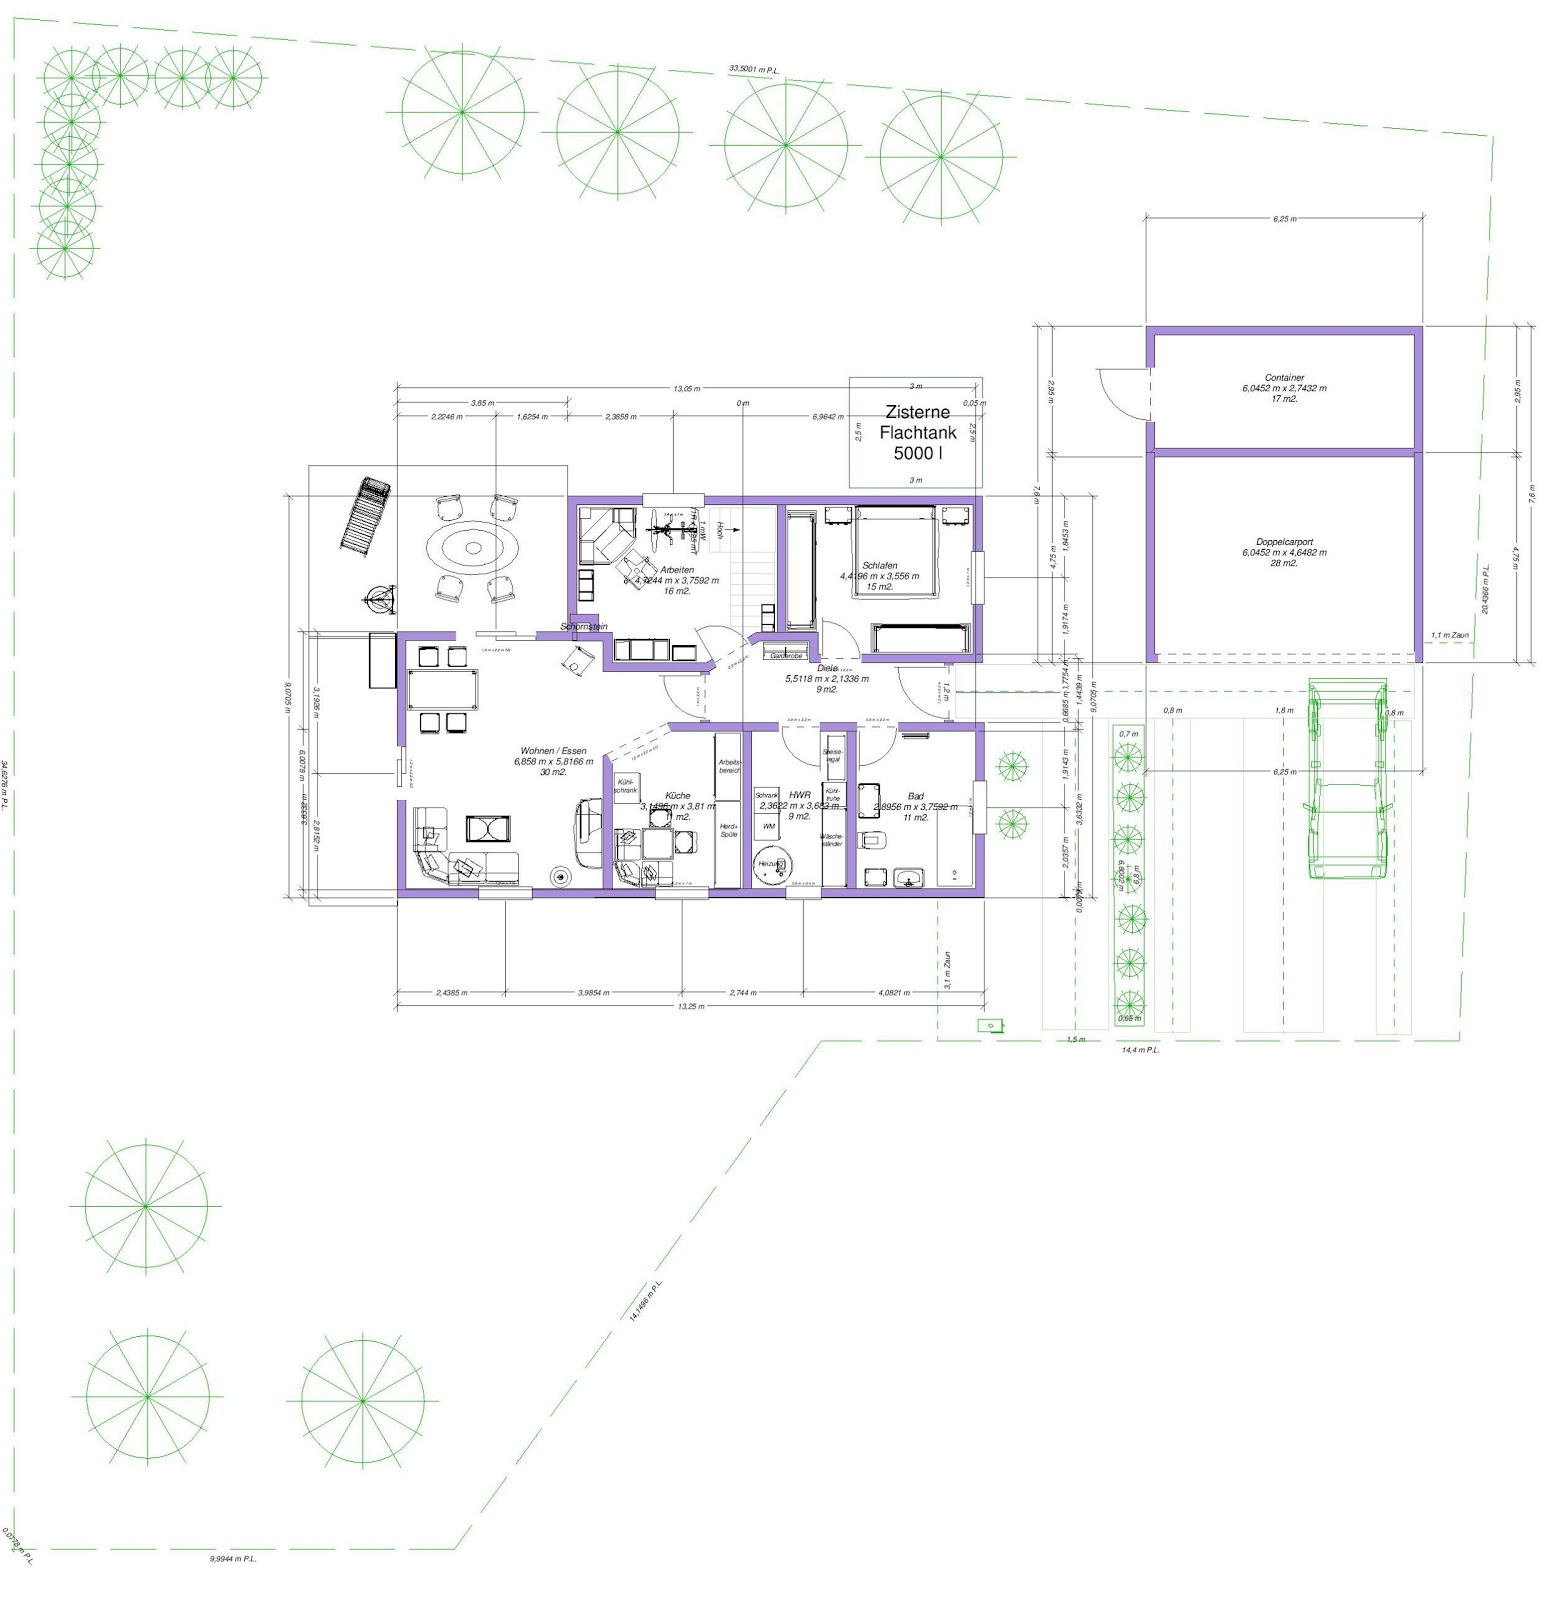 Garage moreover 012g 0052 further Garage Apartment Floor Plans as well Bungalow moreover The Canopy Floor Plan. on a garage with carport